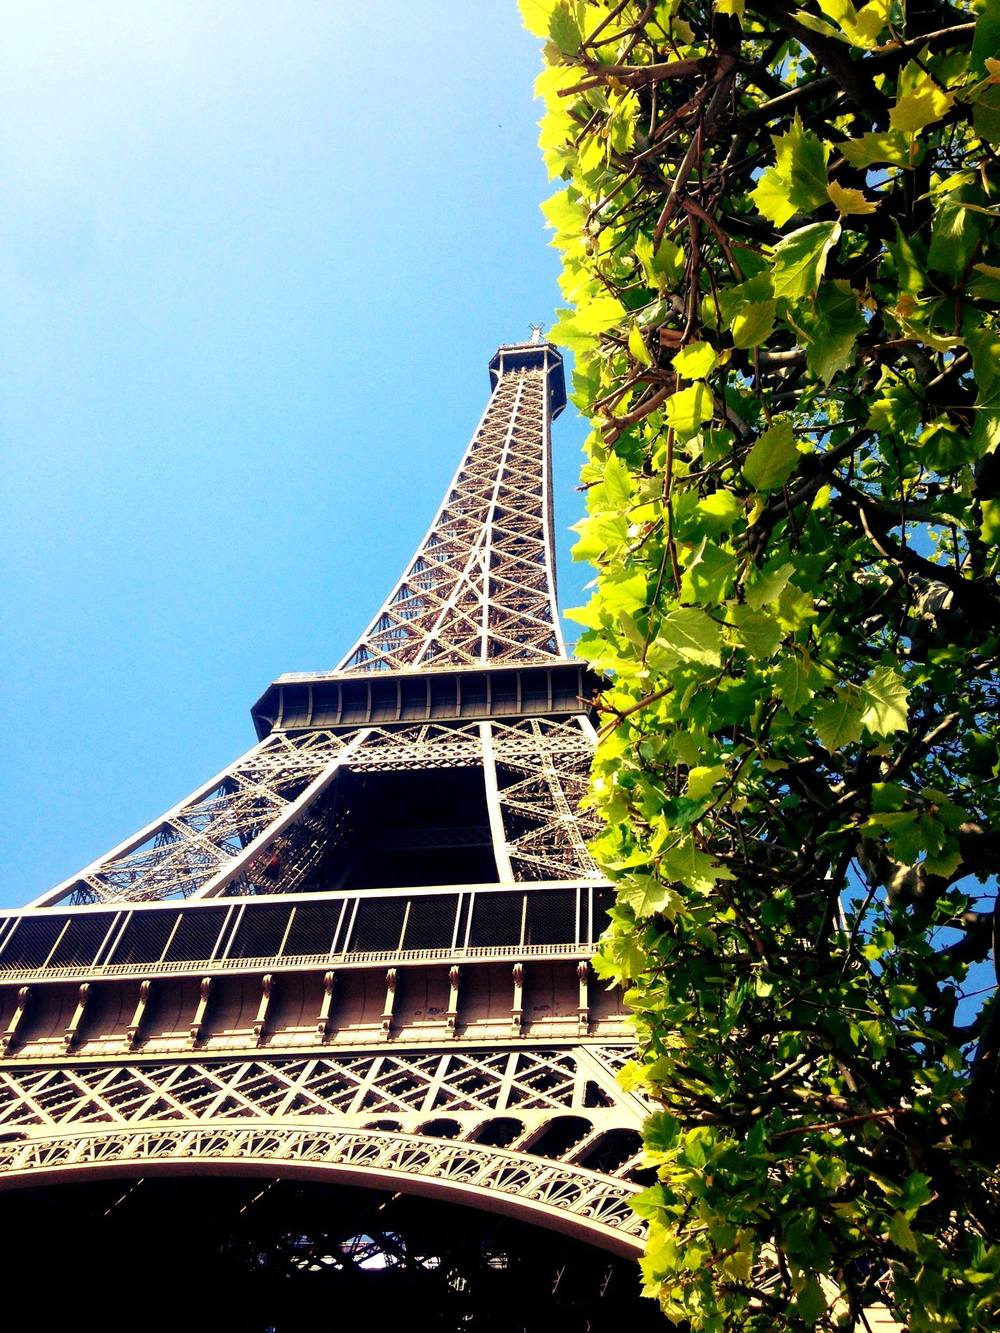 The Eiffel Tower     Paris, France    April 2014    Photographed by  Lina Abisoghomyan